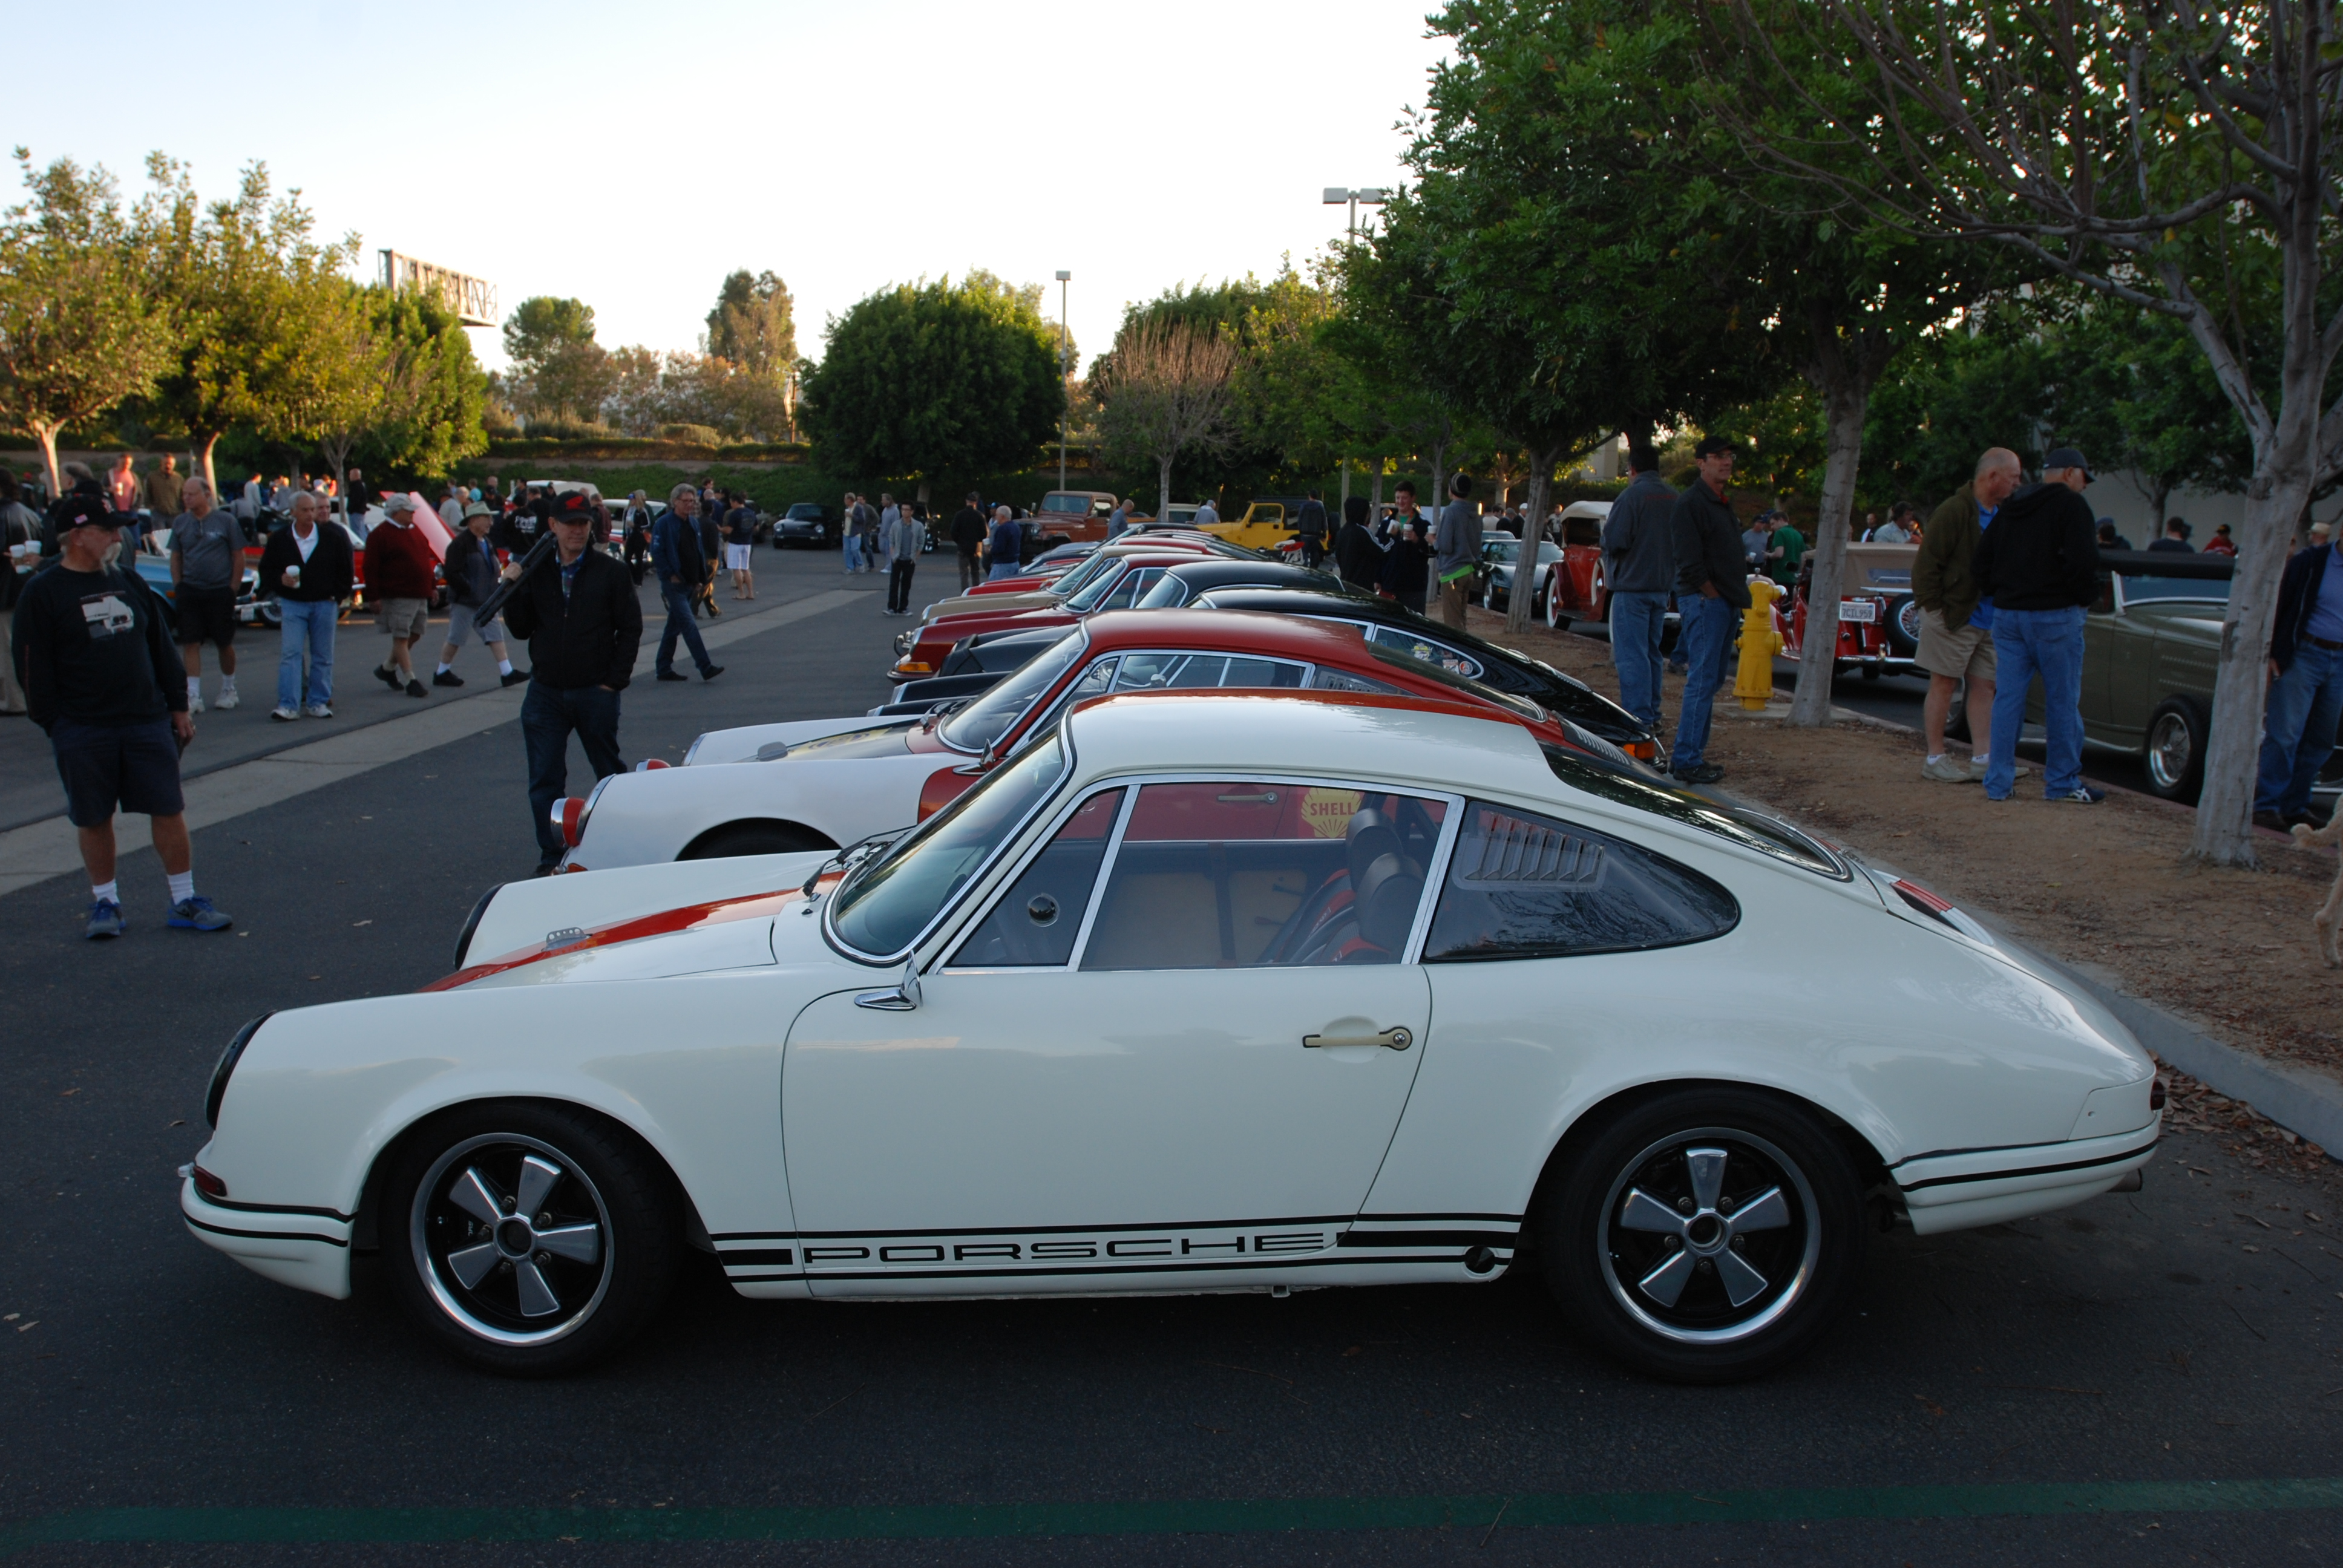 1967 Porsche 911R recreation | digitaldtour